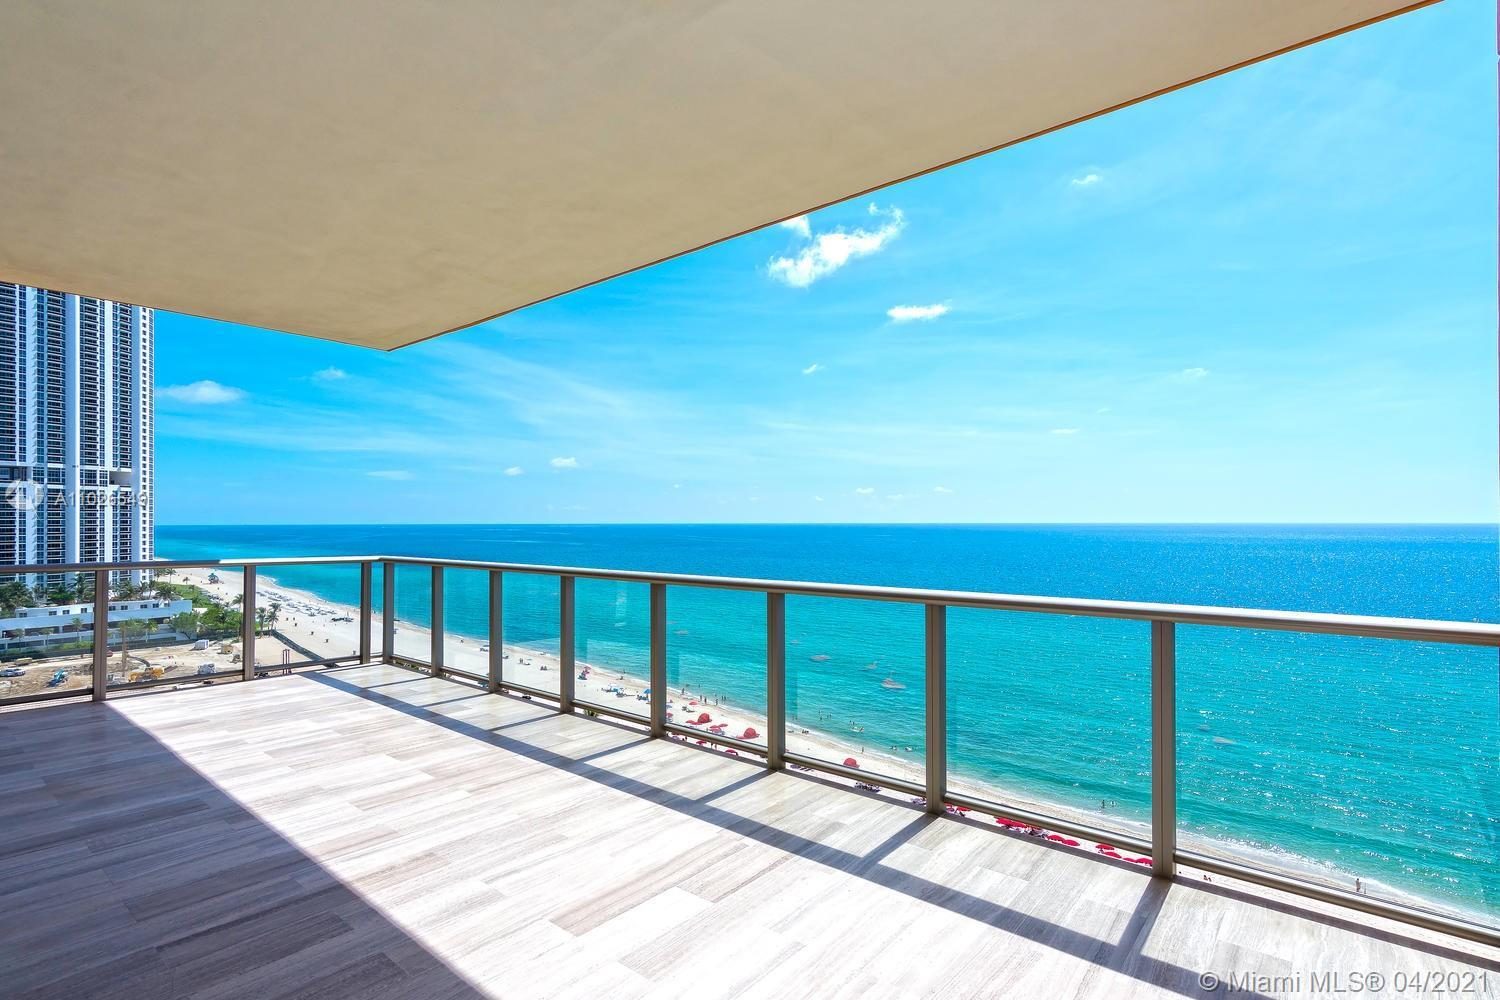 Spectacular corner unit facing ocean and city skyline. This residence features over 4,600 sf flow th